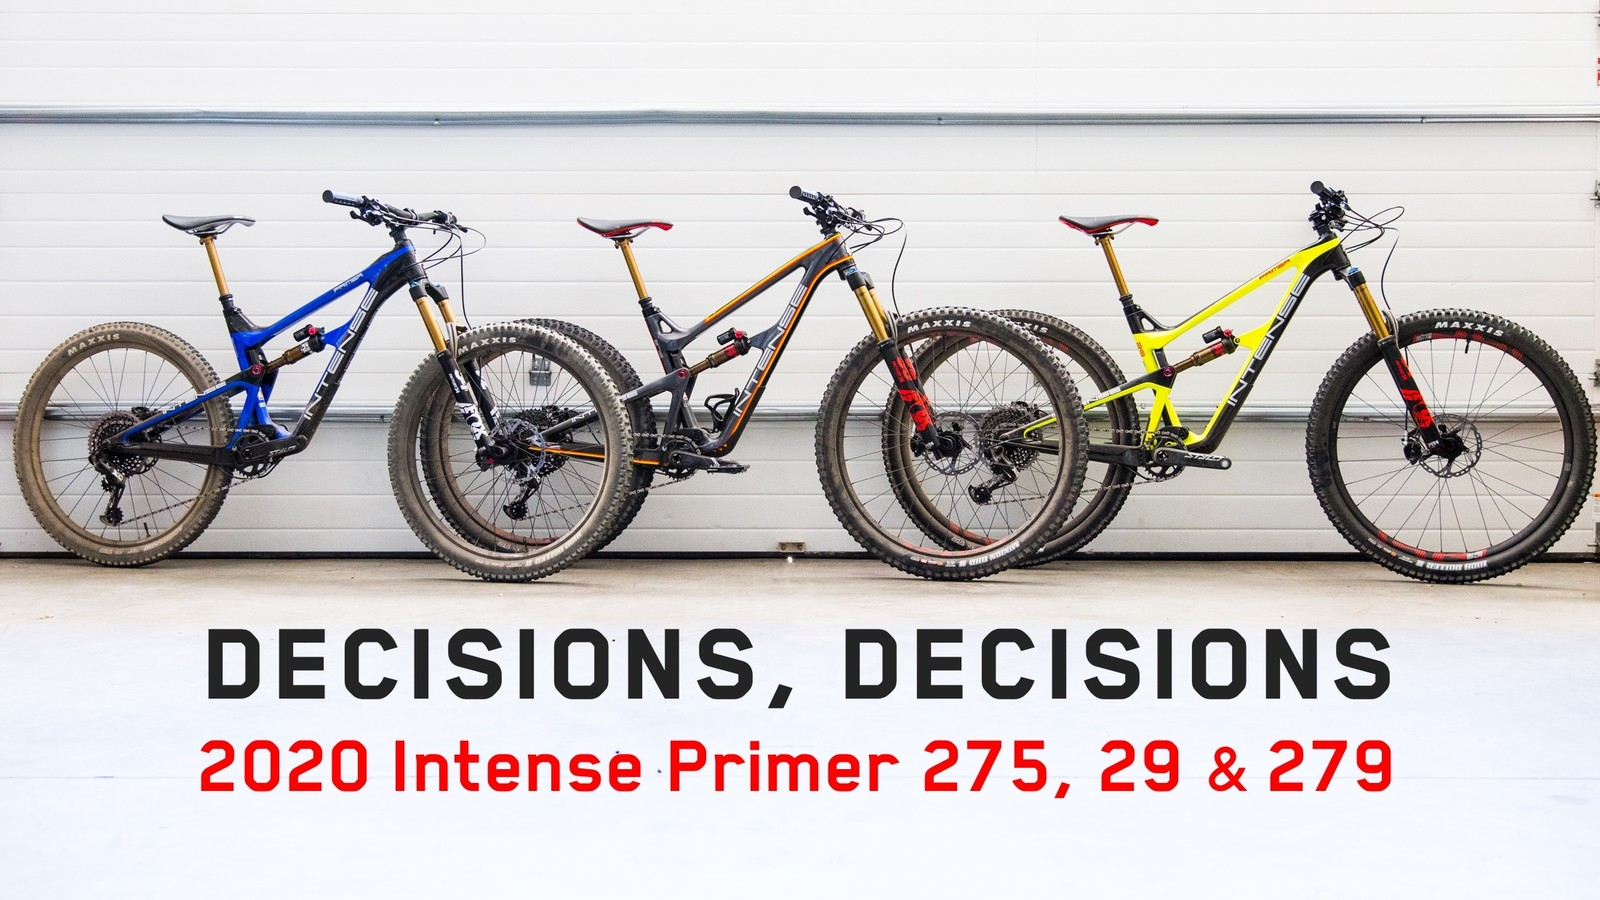 Intense Launches the 2020 Primer in Three Wheel Size Options